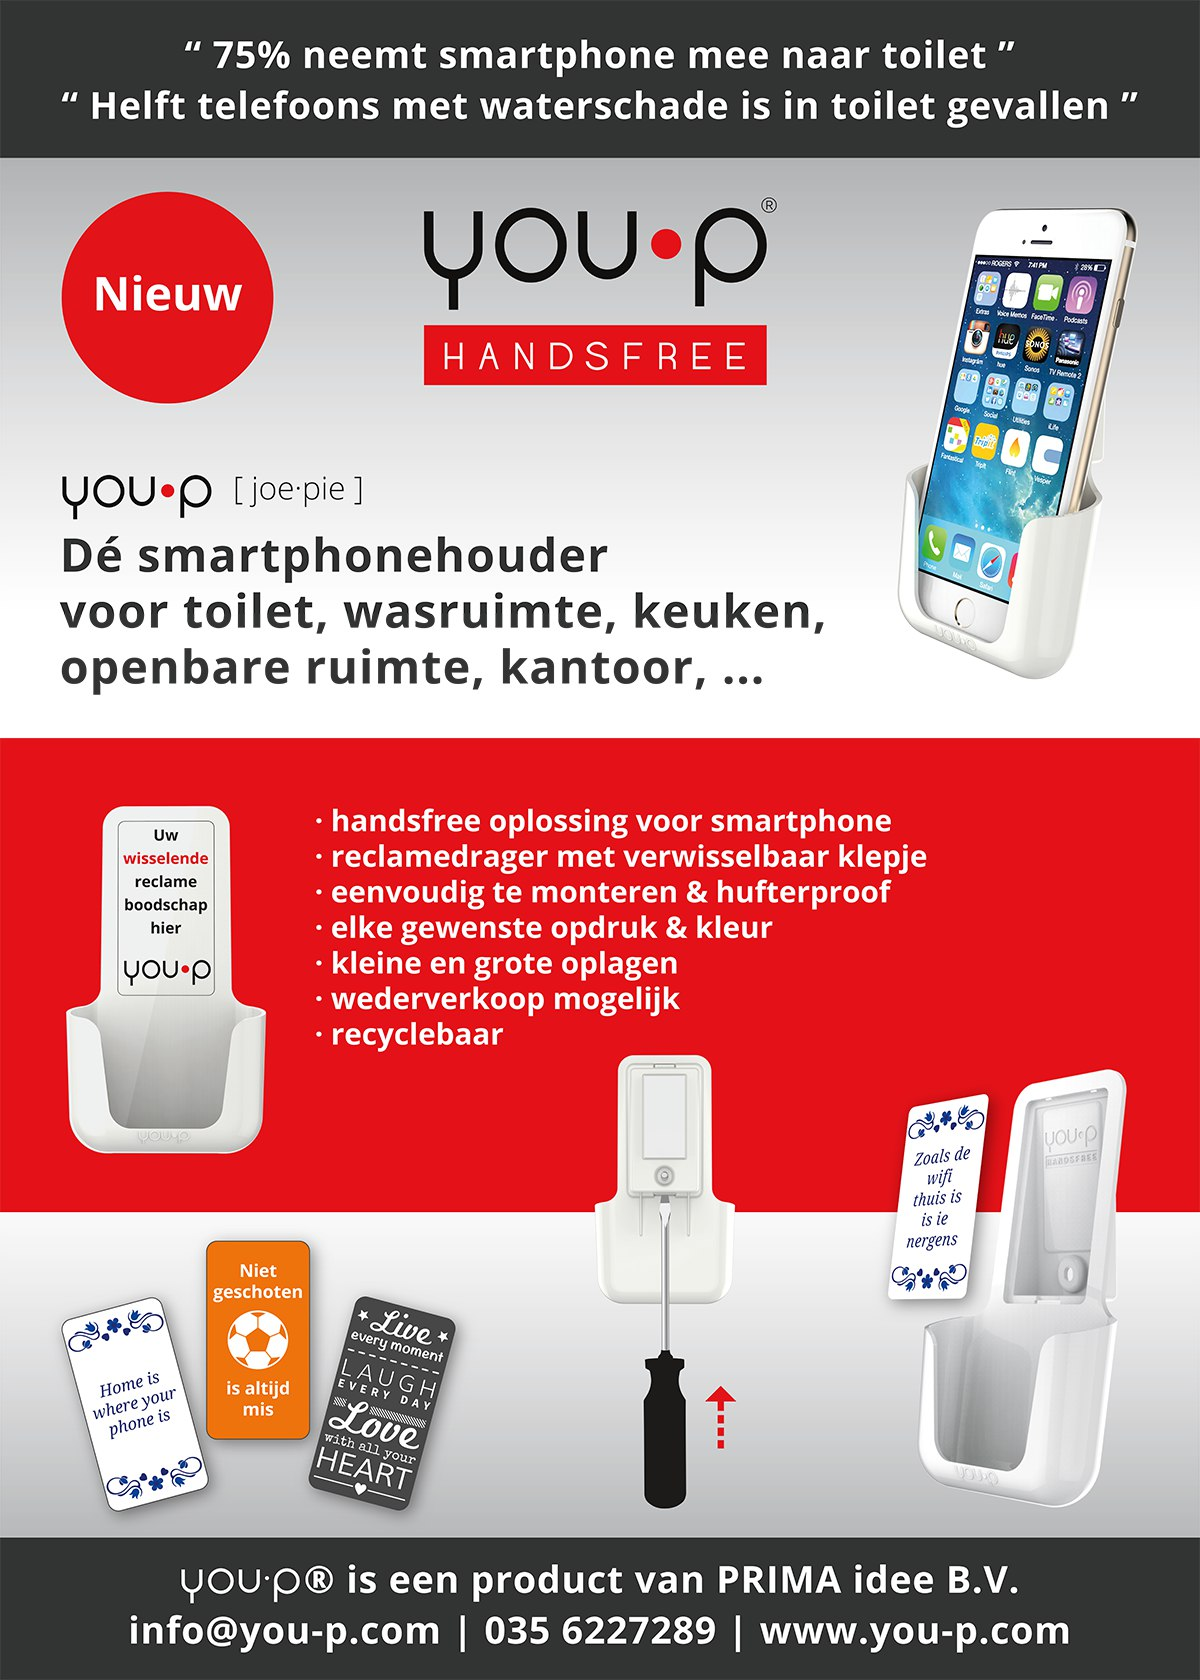 you-p handsfree | smartphone holder | telefoonhouder - horecawerf you-p flyer